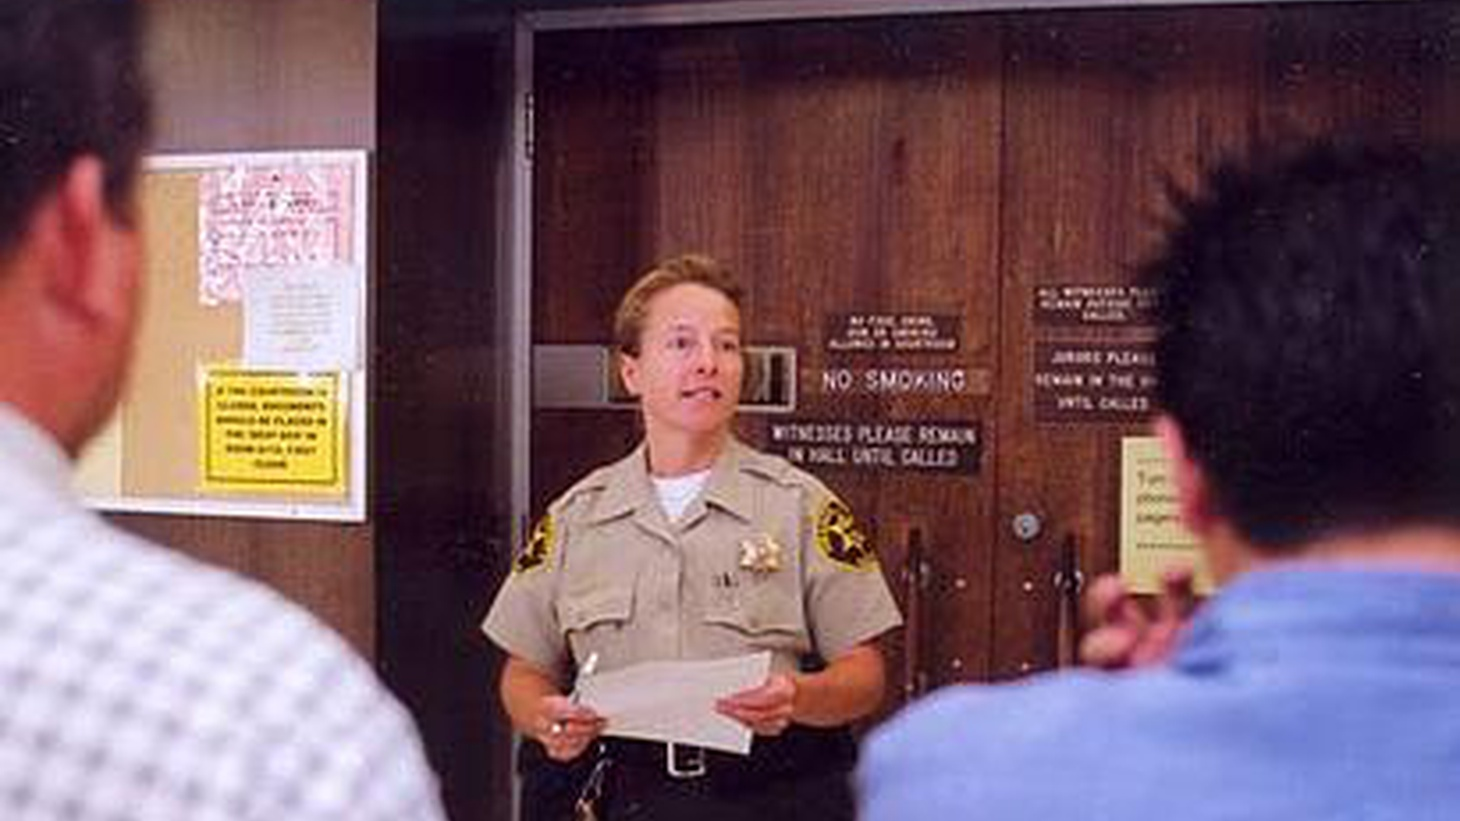 Trials for everything from small claims to felonies will be delayed because the legislature has chopped another 10 percent from the budget of California's court system...